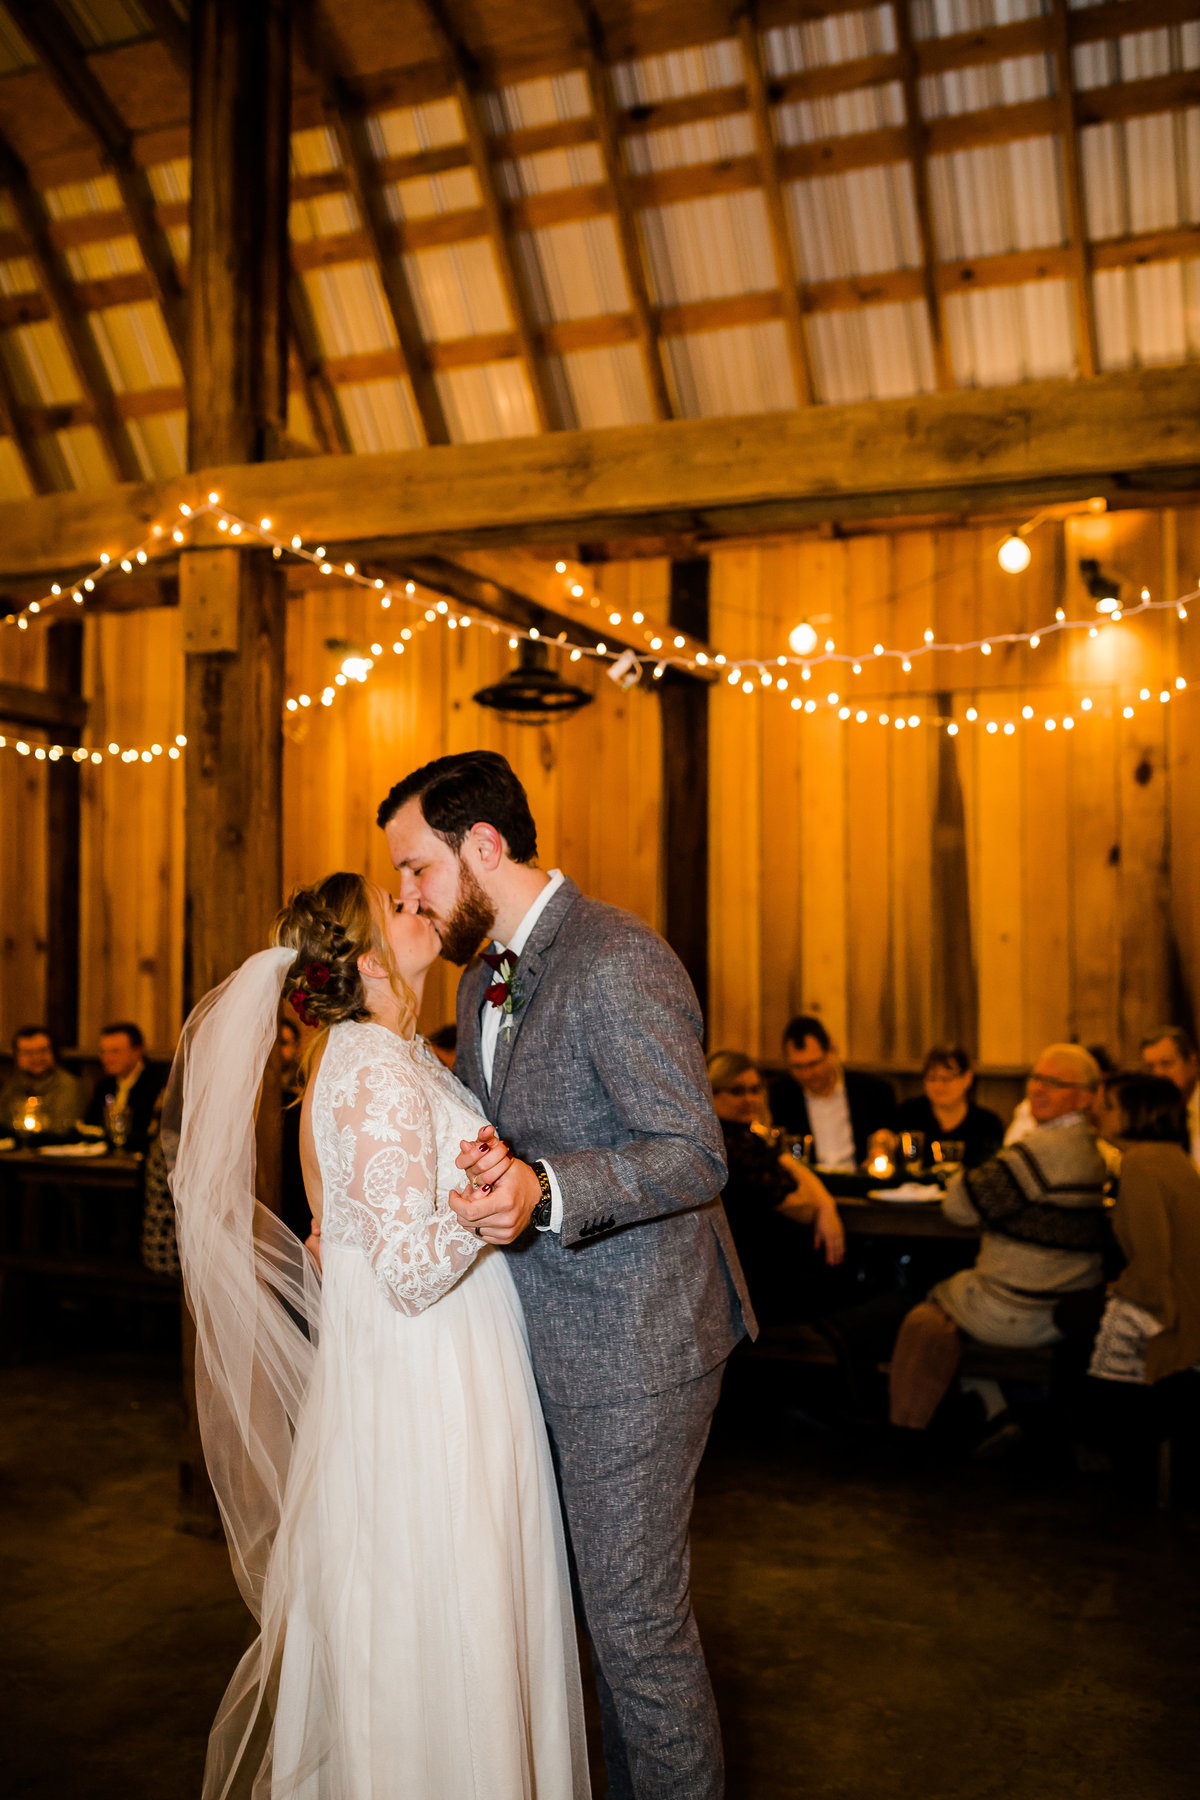 Cactus Creek Barn - Dickson Wedding - Dickson TN - Outdoor Weddings - Outdoor Wedding - Nashville Wedding - Nashville Weddings - Nashville Wedding Photographer - Nashville Wedding Photographers157